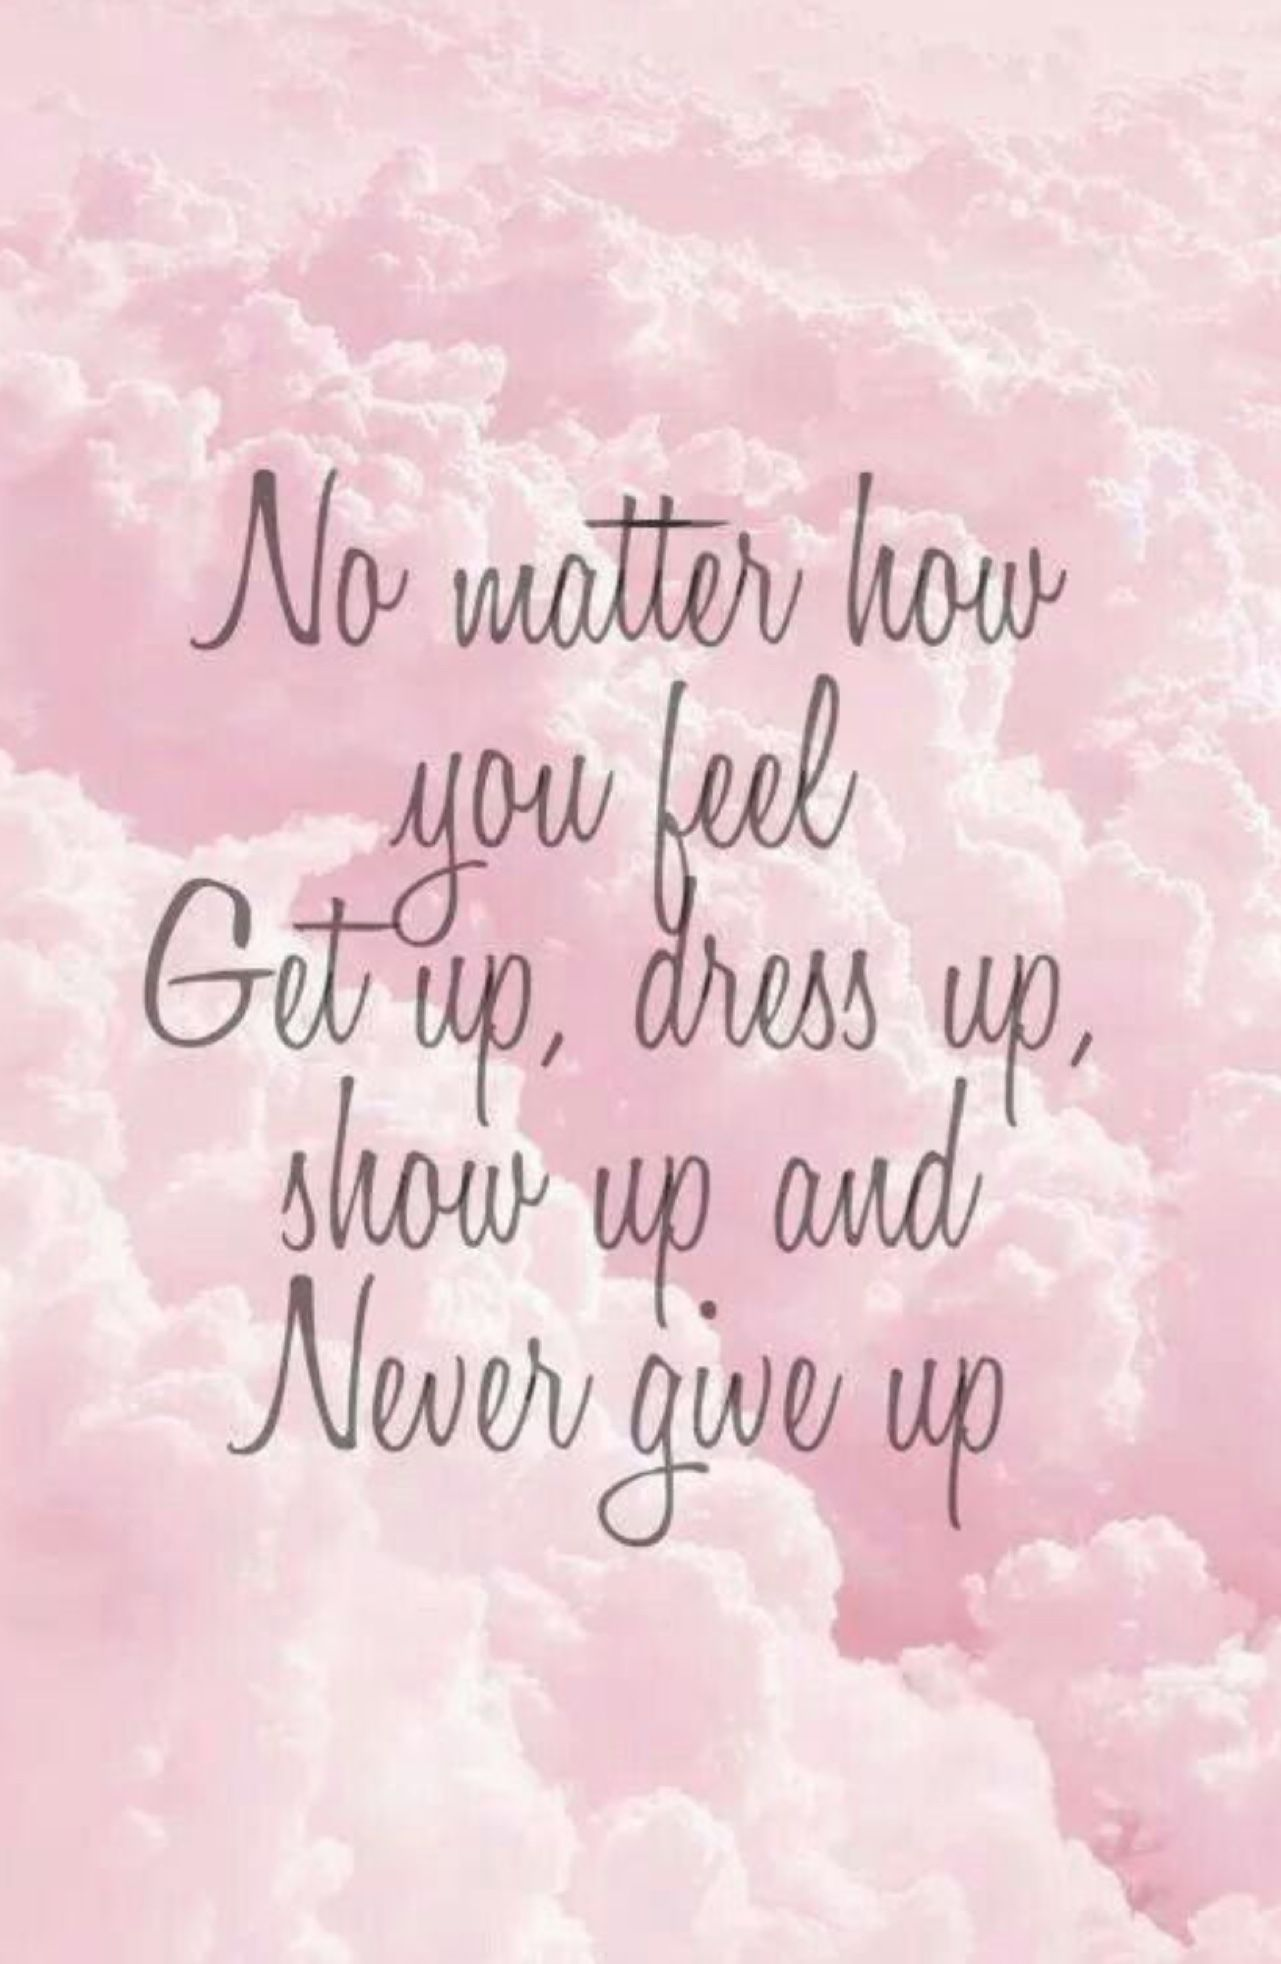 Never give up. quotes. wisdom. advice. life lessons ...